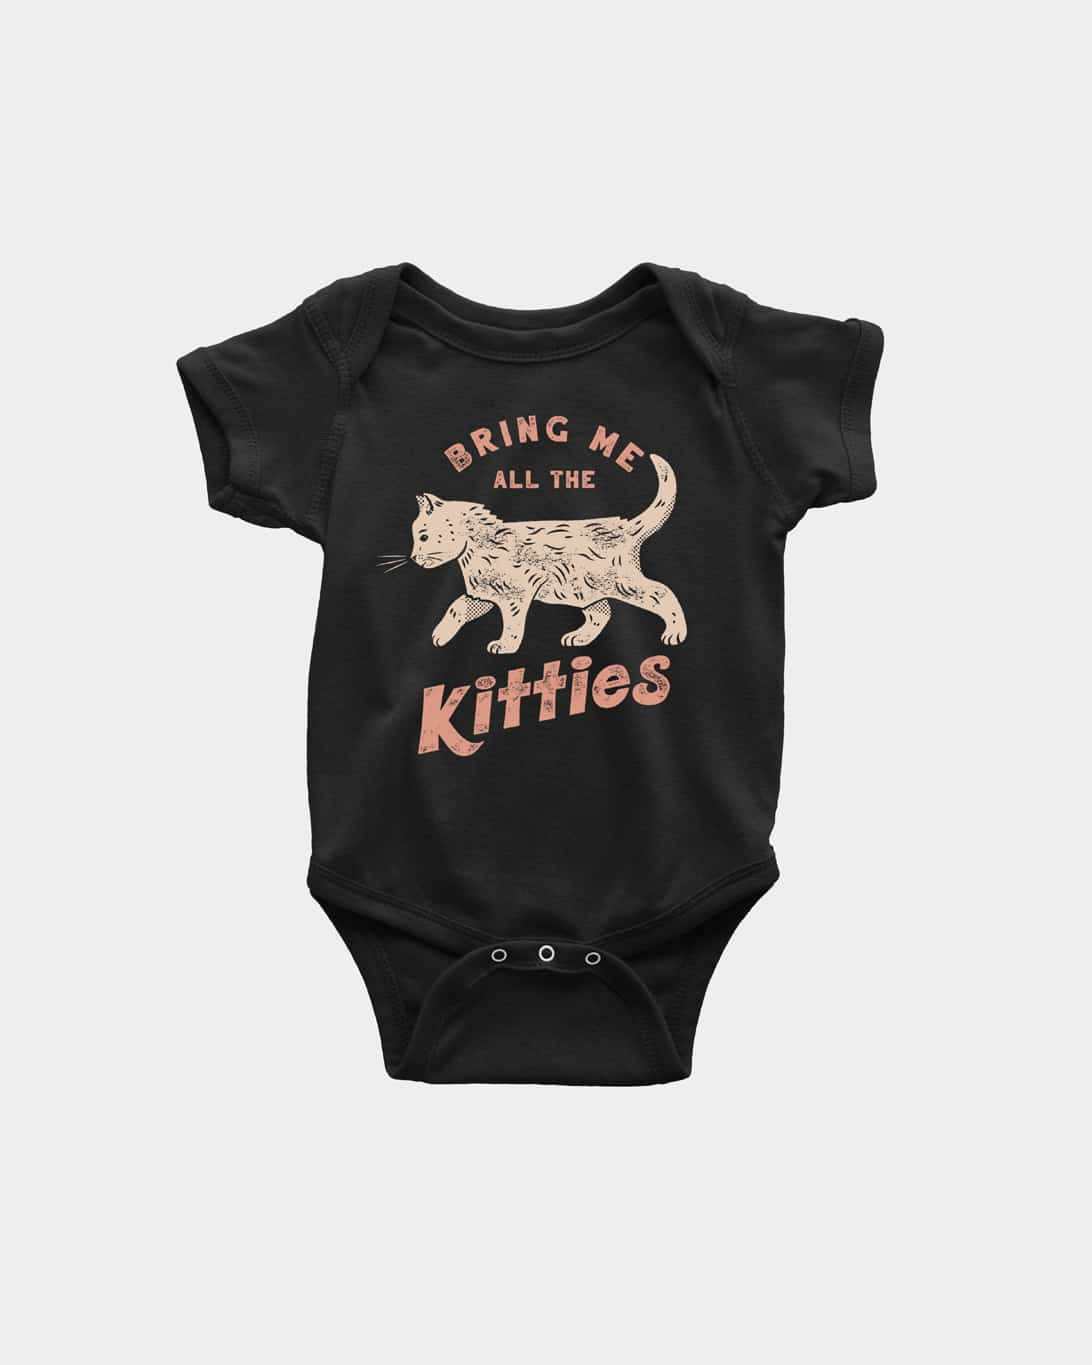 A mockup of a black kid's onesie that says 'Bring me all the Kitties' with a cat on it.